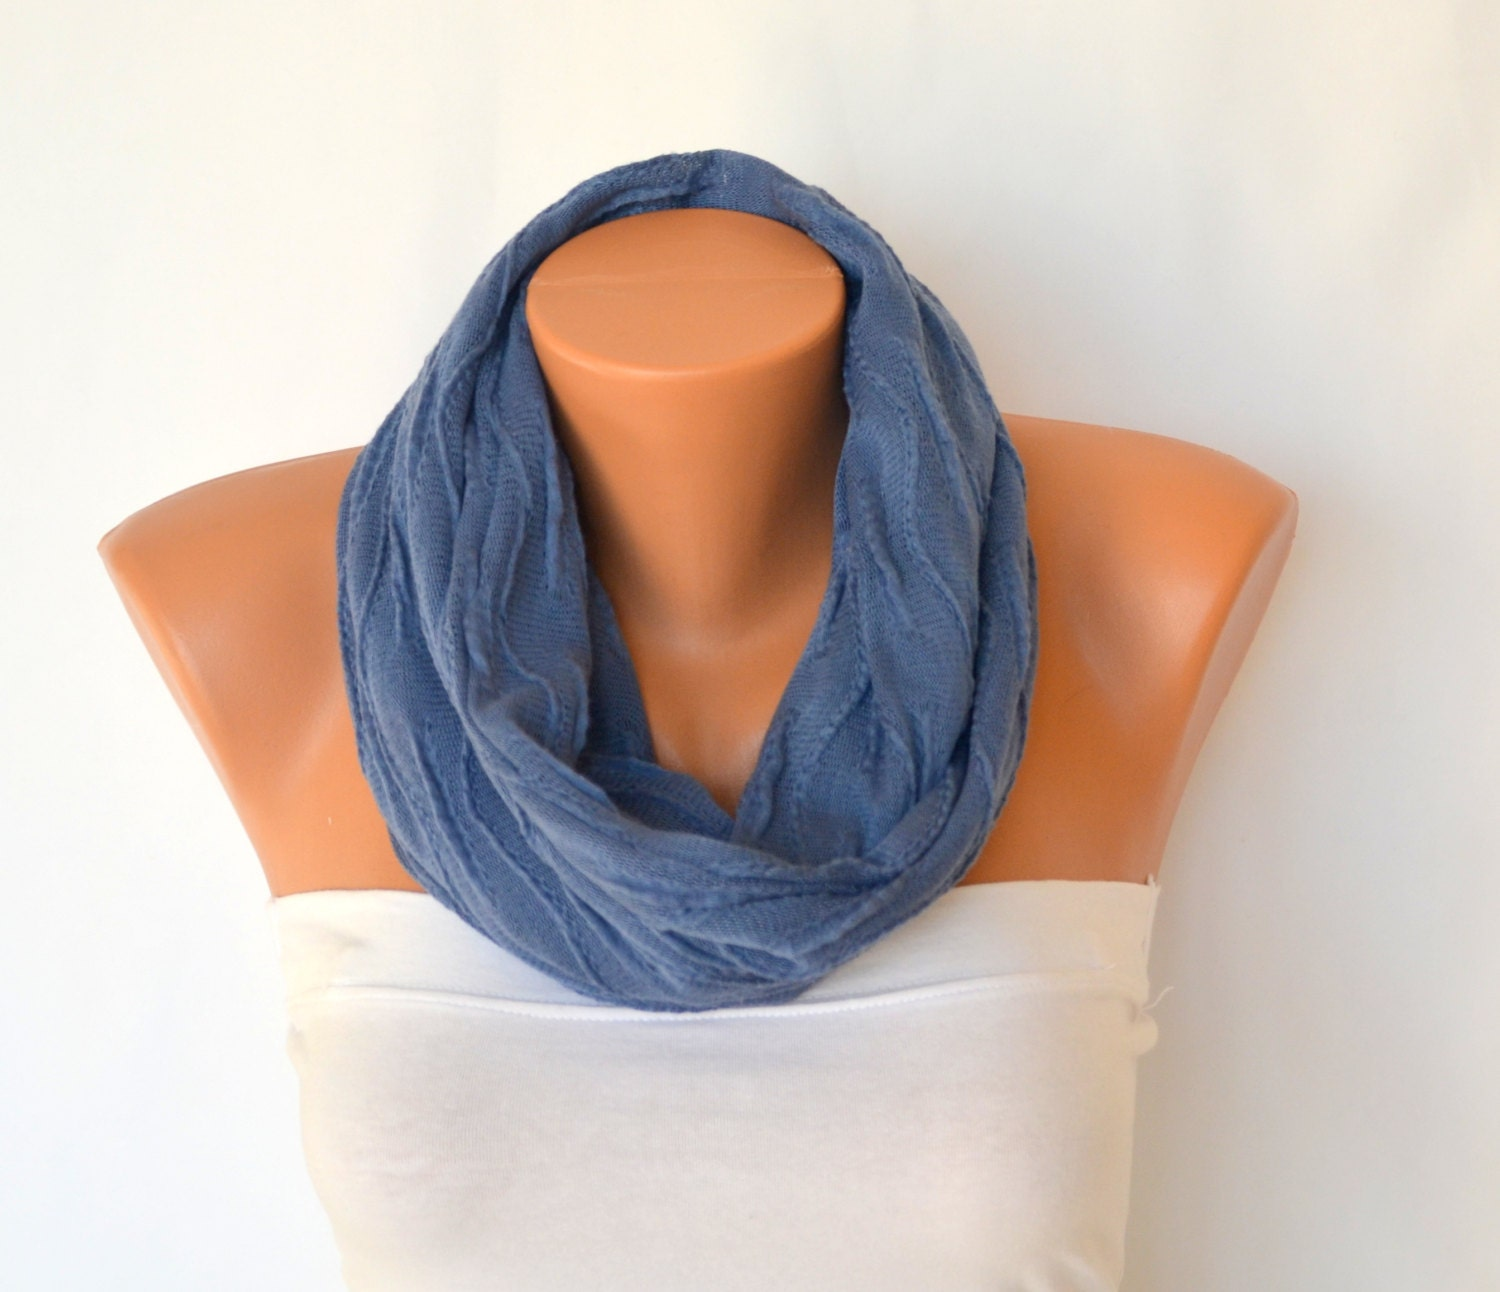 Denim blue machine knit infinity scarf circle scarf winter scarves neck warmers cowl birthday gifts fashion accessories - bstyle